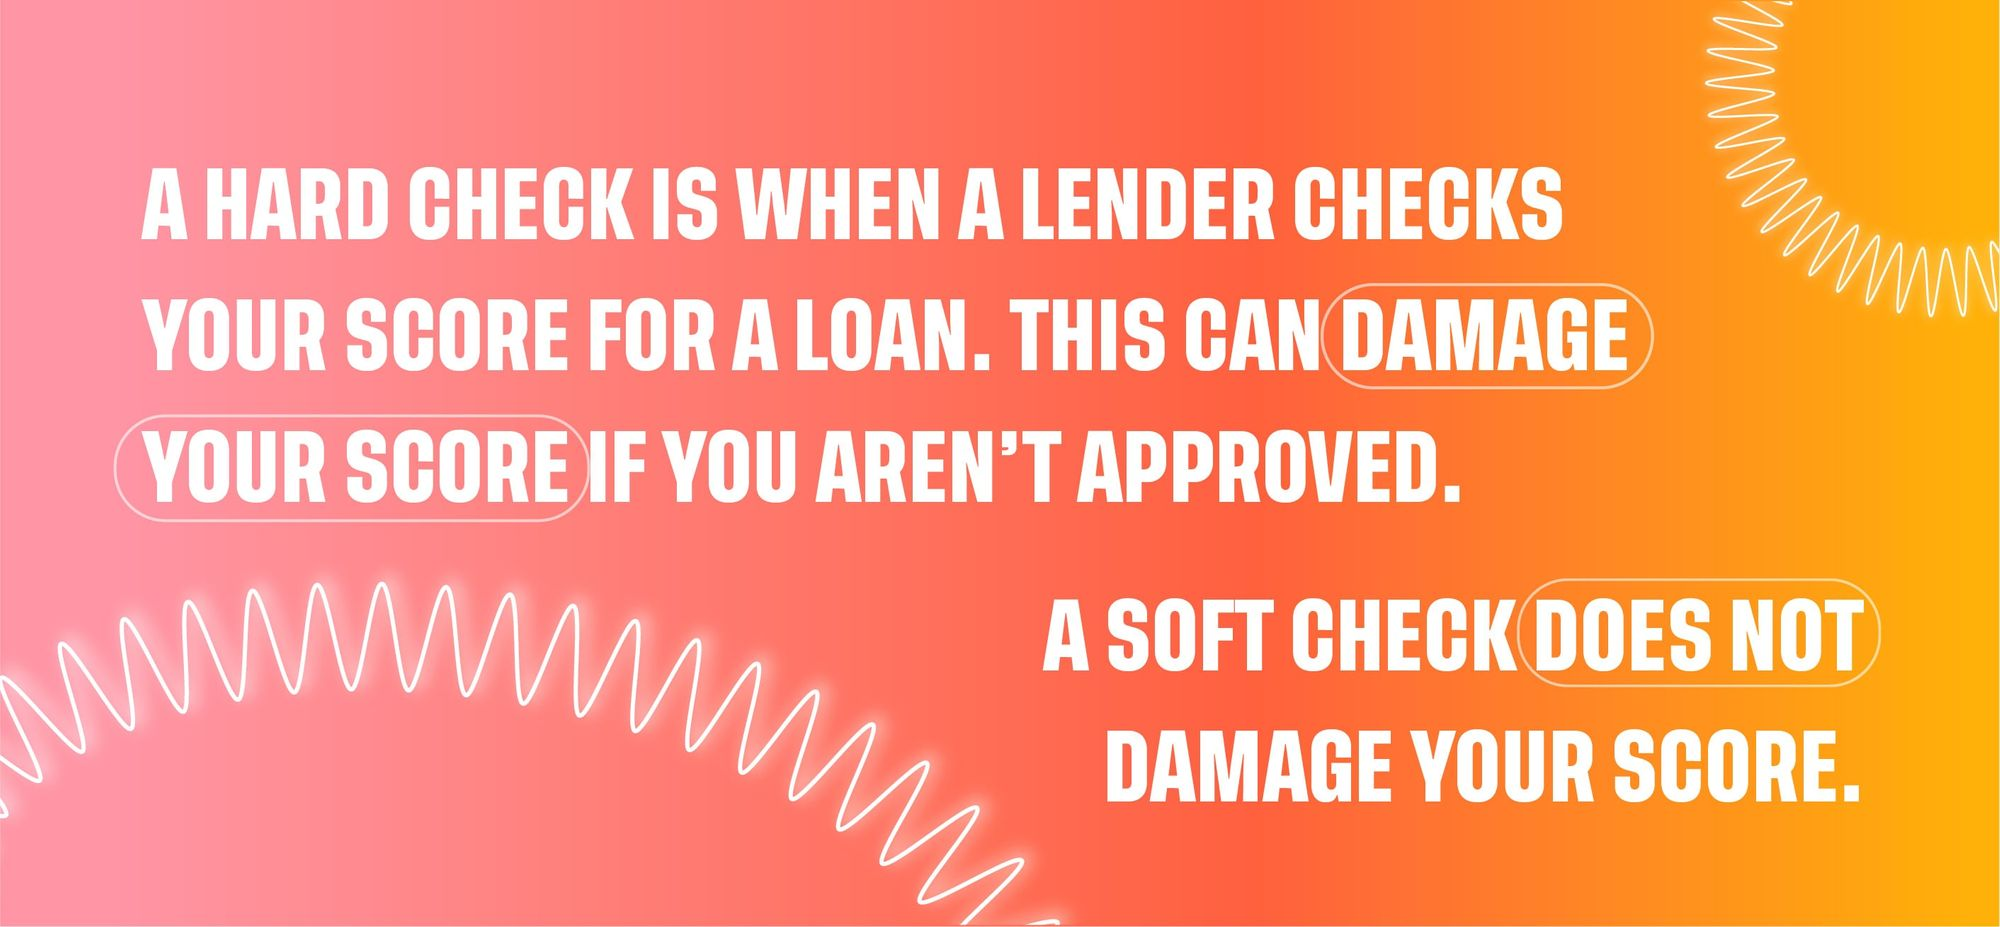 A hard check is when a lender checks your score for a loan. This can damage your score if you aren't approved. A soft check does not damage your score.